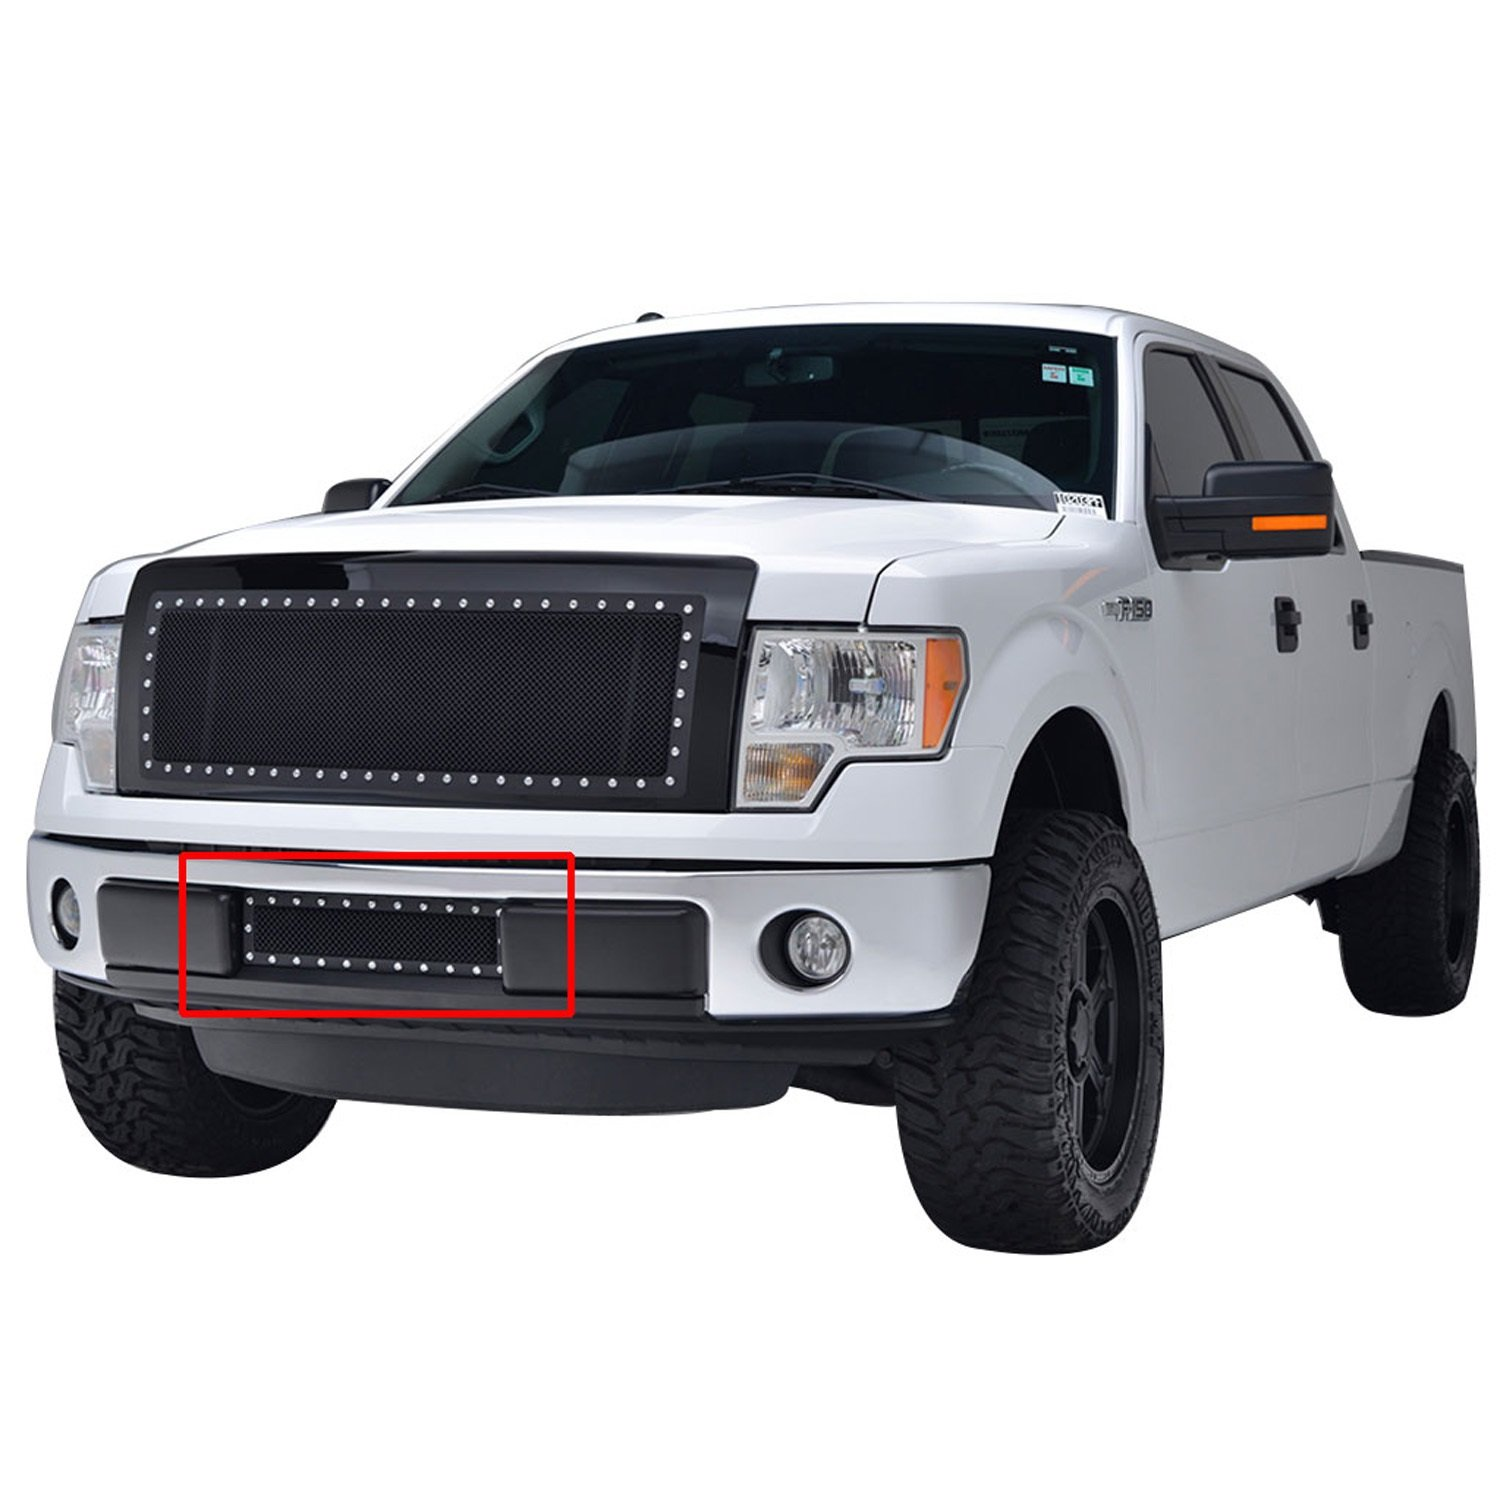 Paramount Automotive Paramount Restyling 46-0744 Black Stainless Steel Wire Mesh Bumper Grille Ford F-150 Evolution